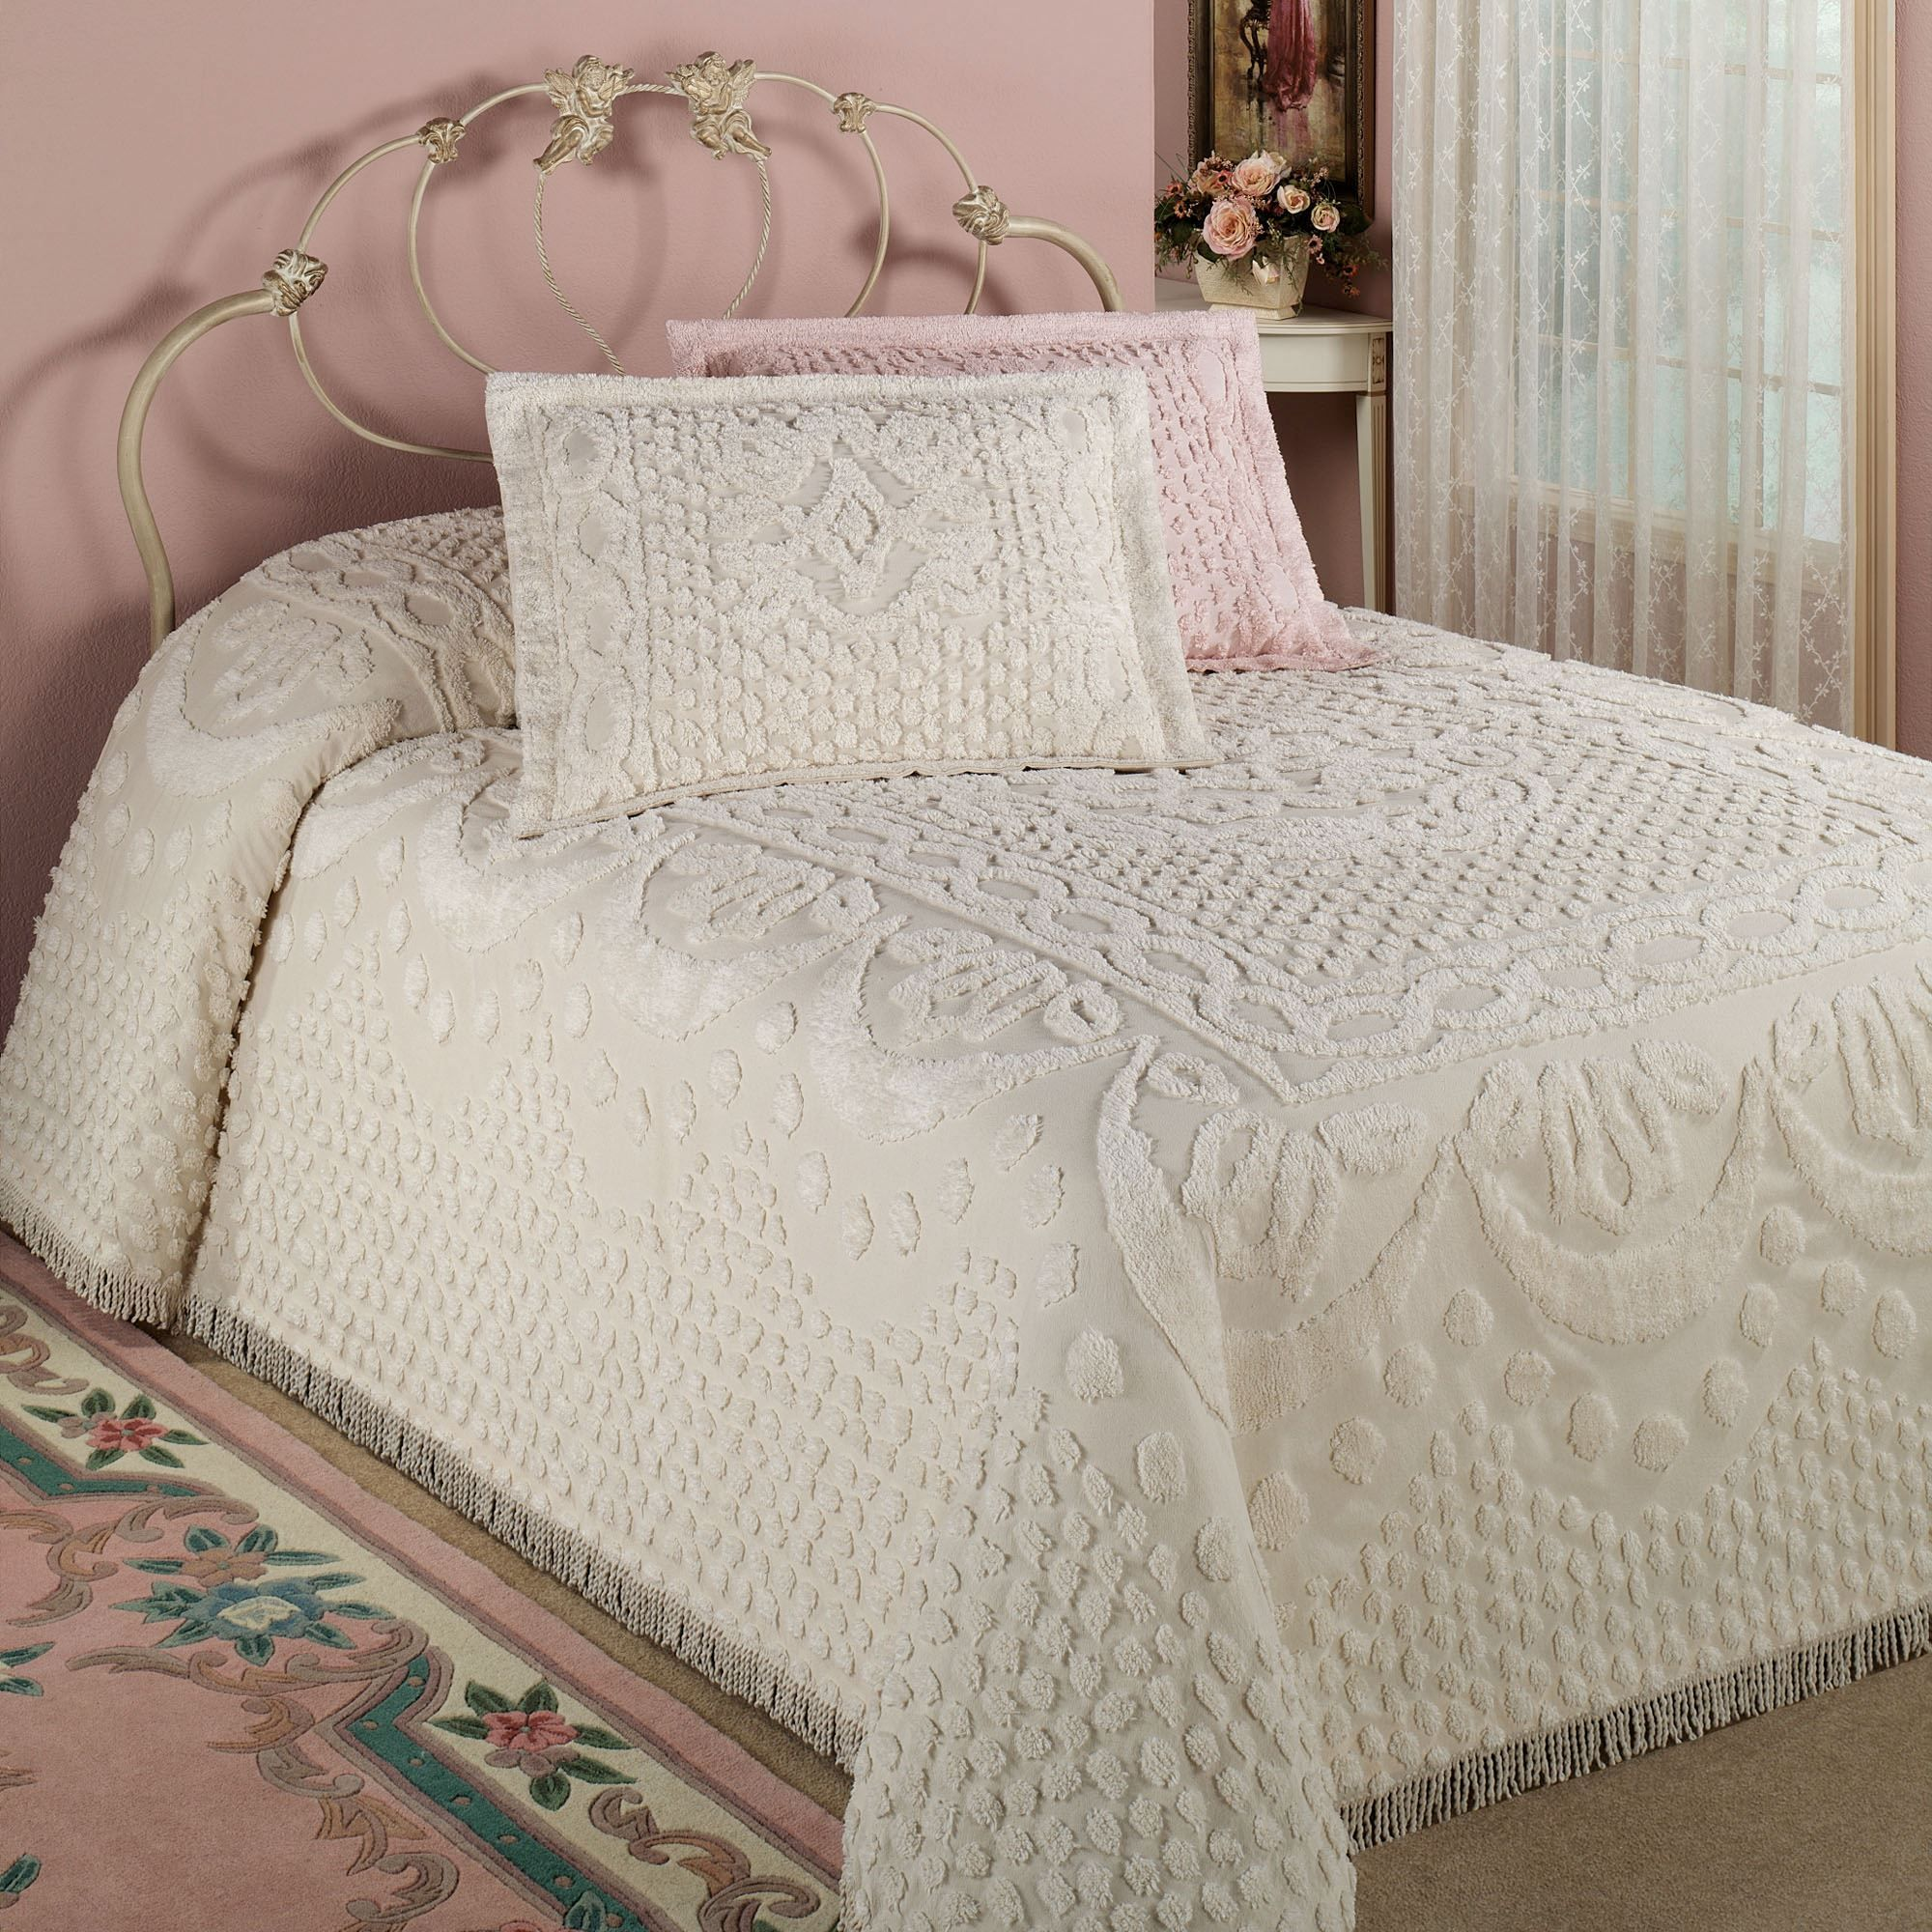 Kingston Beige Or White Chenille Bedspreads Chenille Bedspread Bed Spreads Queen Size Bedspread